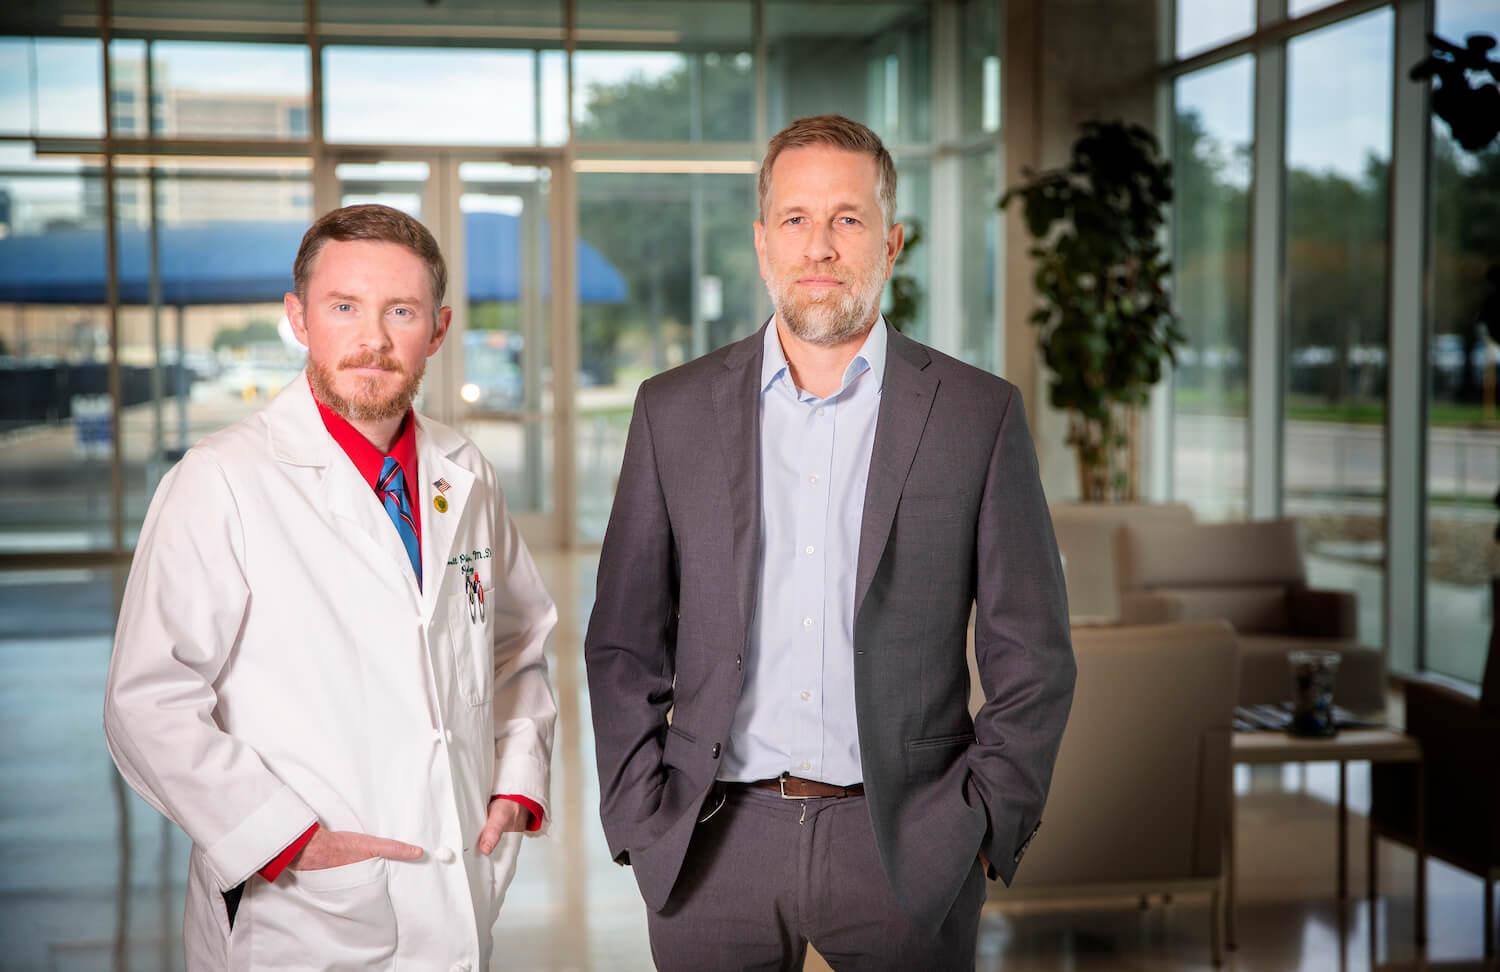 Garrett Phillips, M.D., left, an assistant medical examiner for the Harris County Institute of Forensic Sciences (HCIFS), and Jason Wiersema, Ph.D., the director of forensic anthropology and emergency management at HCIFS.